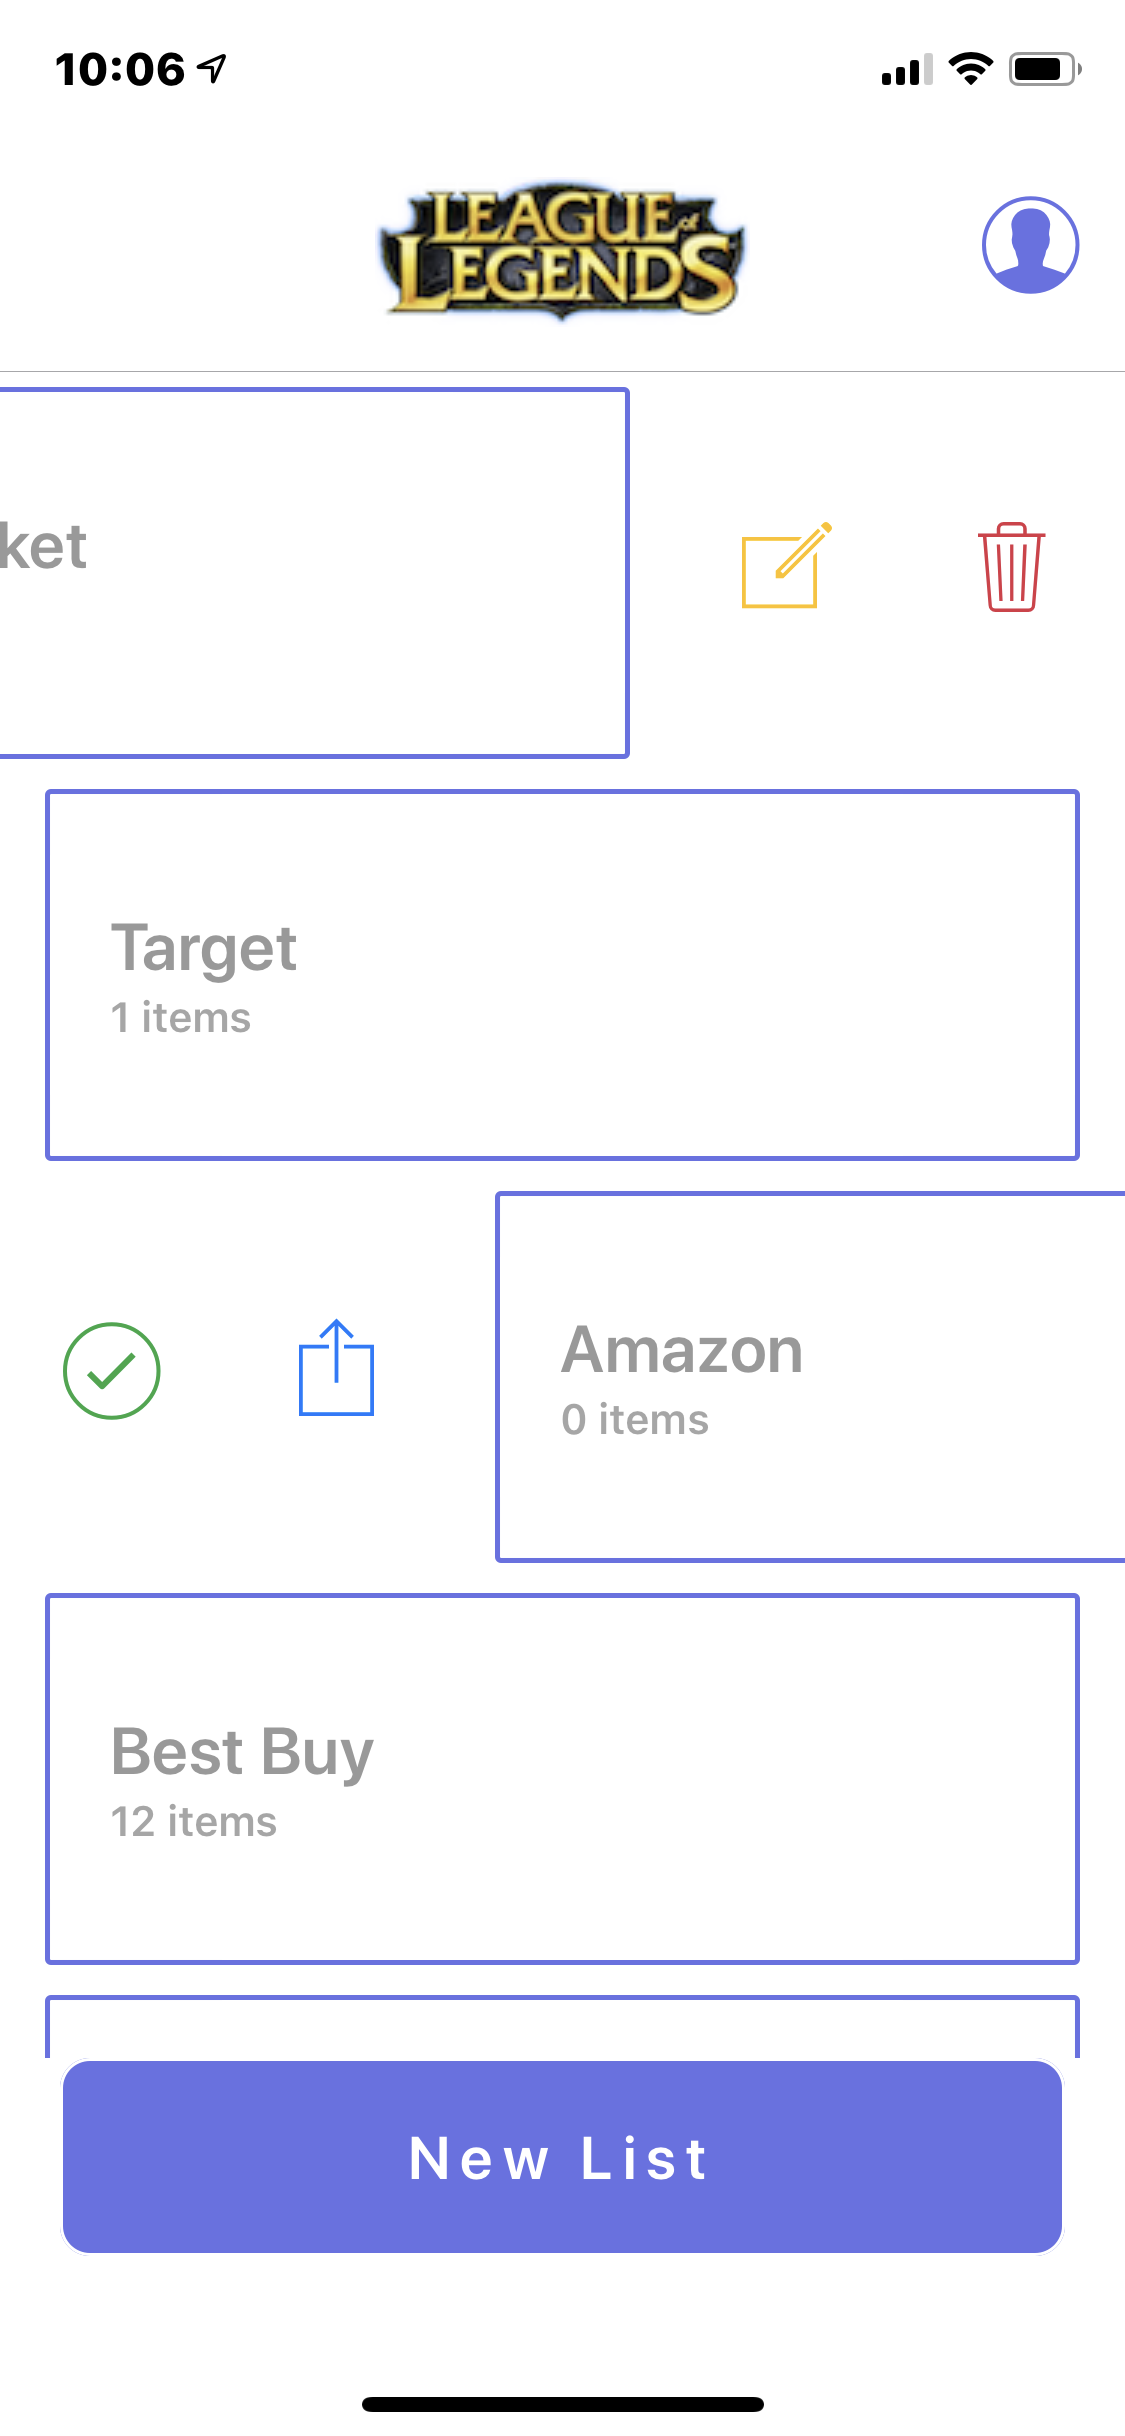 823b747f4 It's a shopping list app, you swipe right and see a delete and edit button,  swipe left and you see a button to complete the list or share the list.